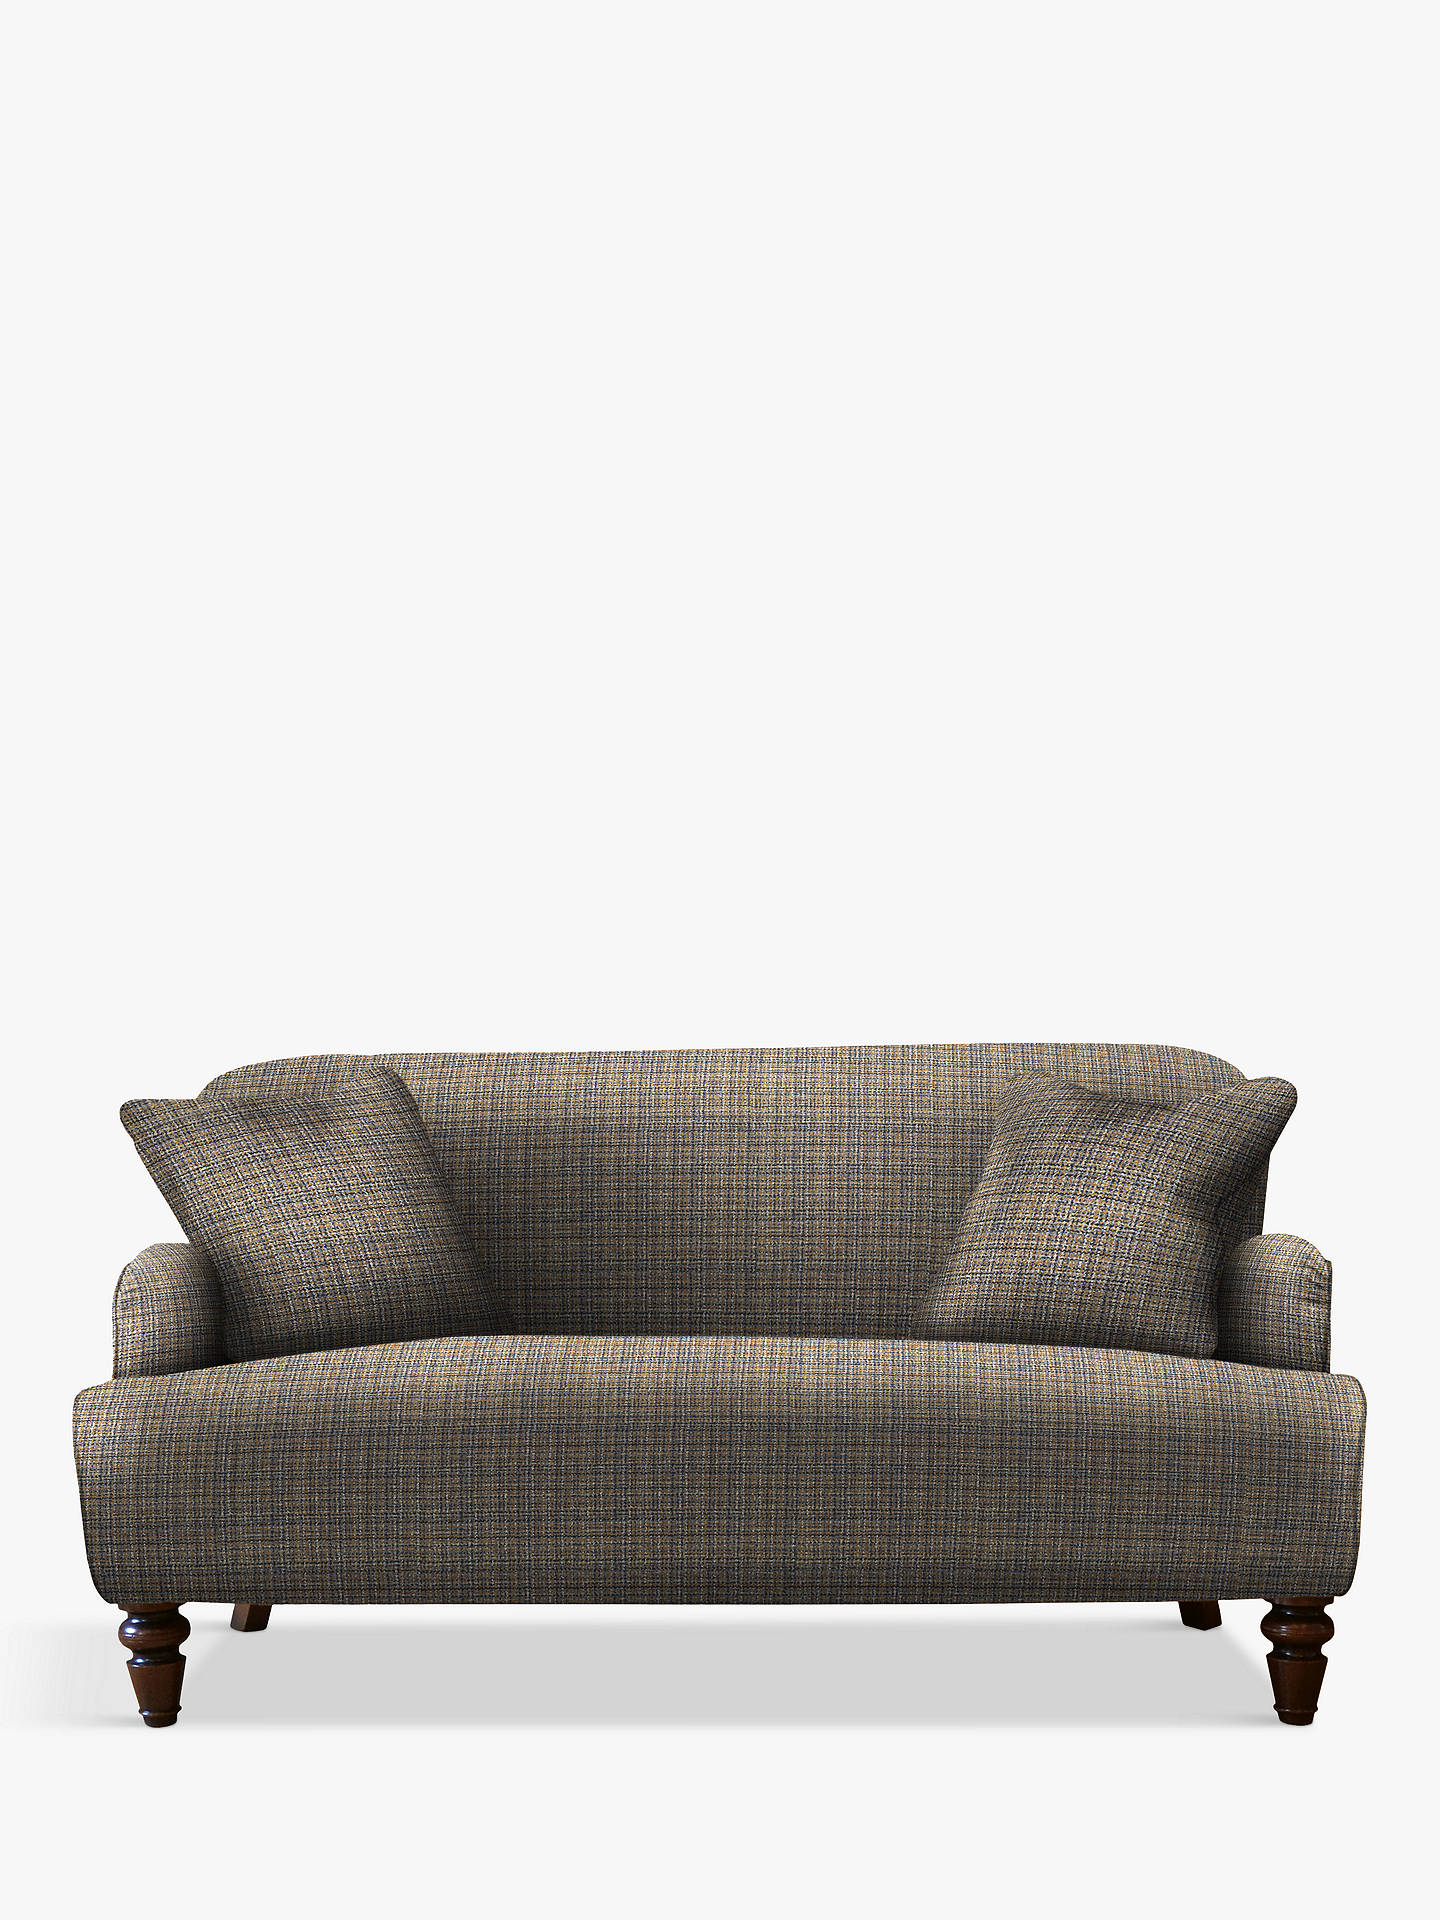 Buy Tetrad Lewis Petite 2 Seater Sofa, Harris Tweed Calluna Atlantic Online at johnlewis.com